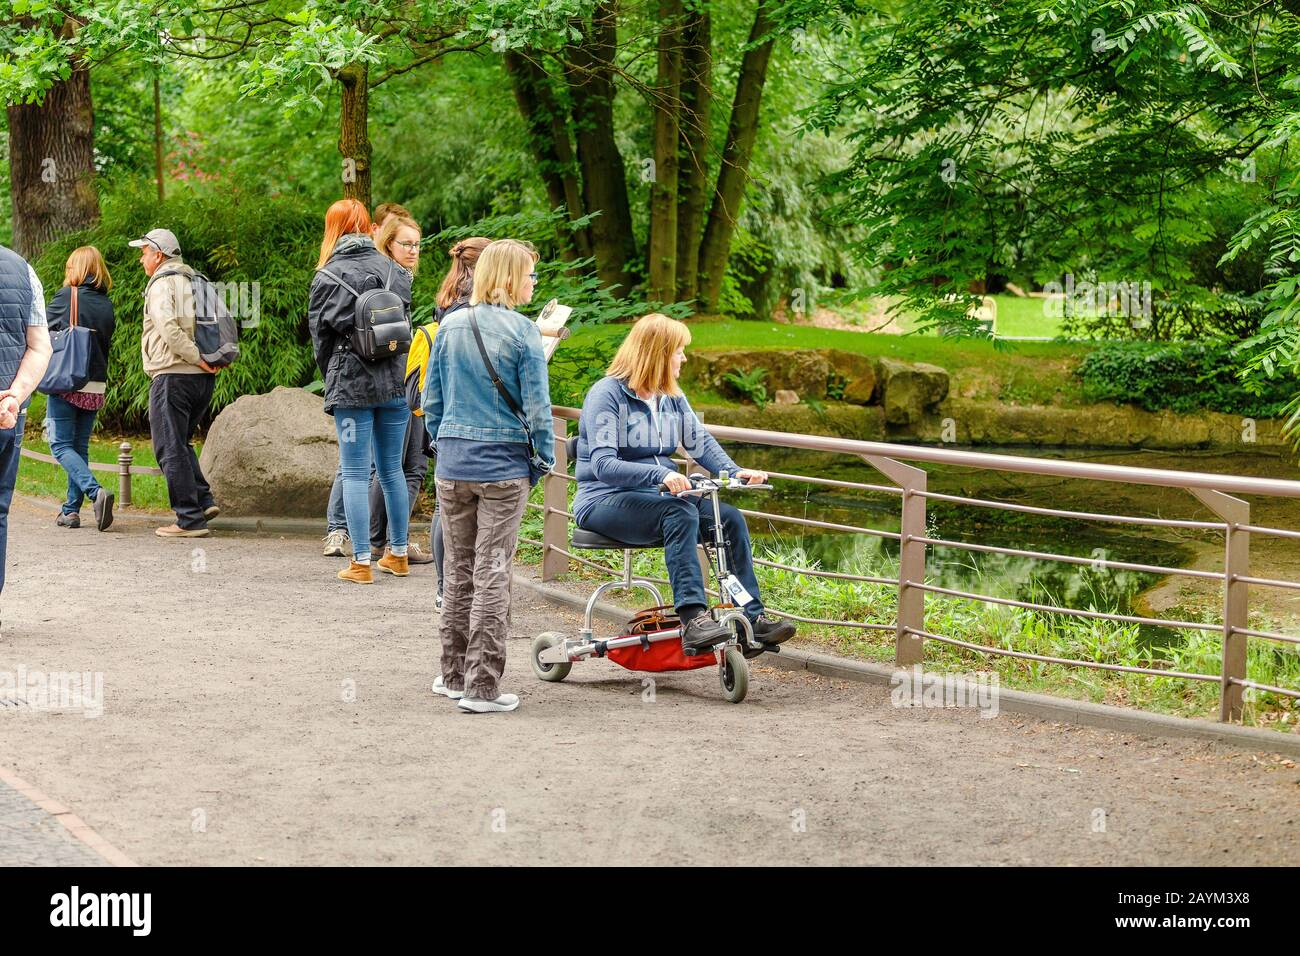 18 MAY 2018, BERLIN, GERMANY: People watching animals in the Zoo, family leisure concept Stock Photo